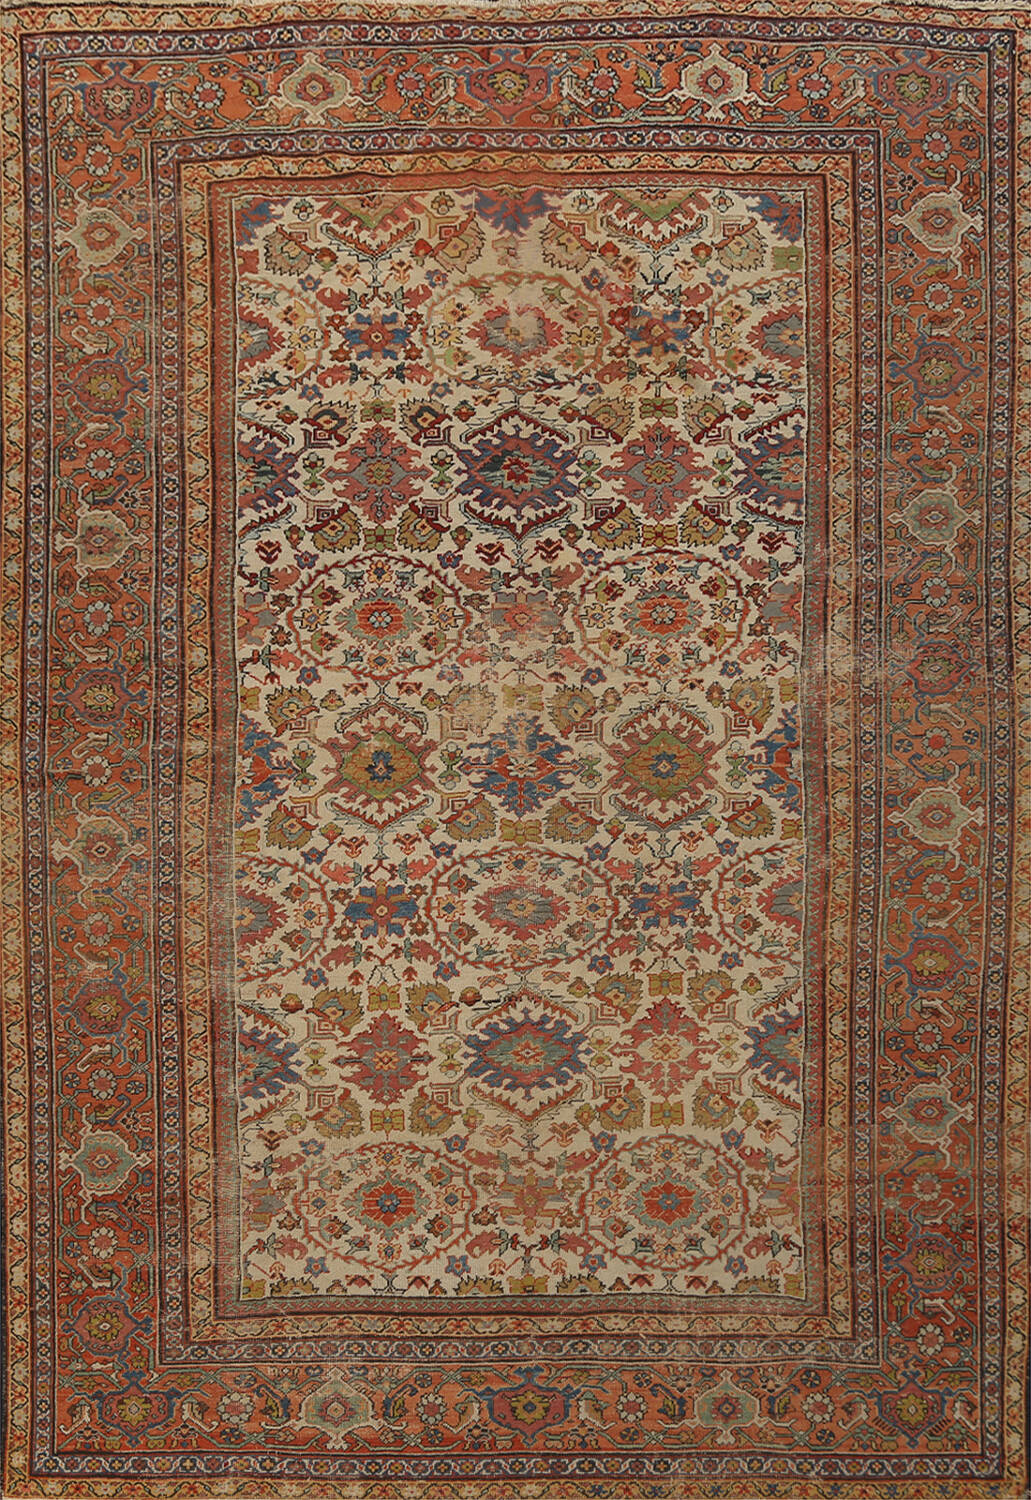 Pre-1900 Antique Vegetable Dye Sultanabad Persian Area Rug 9x12 image 1